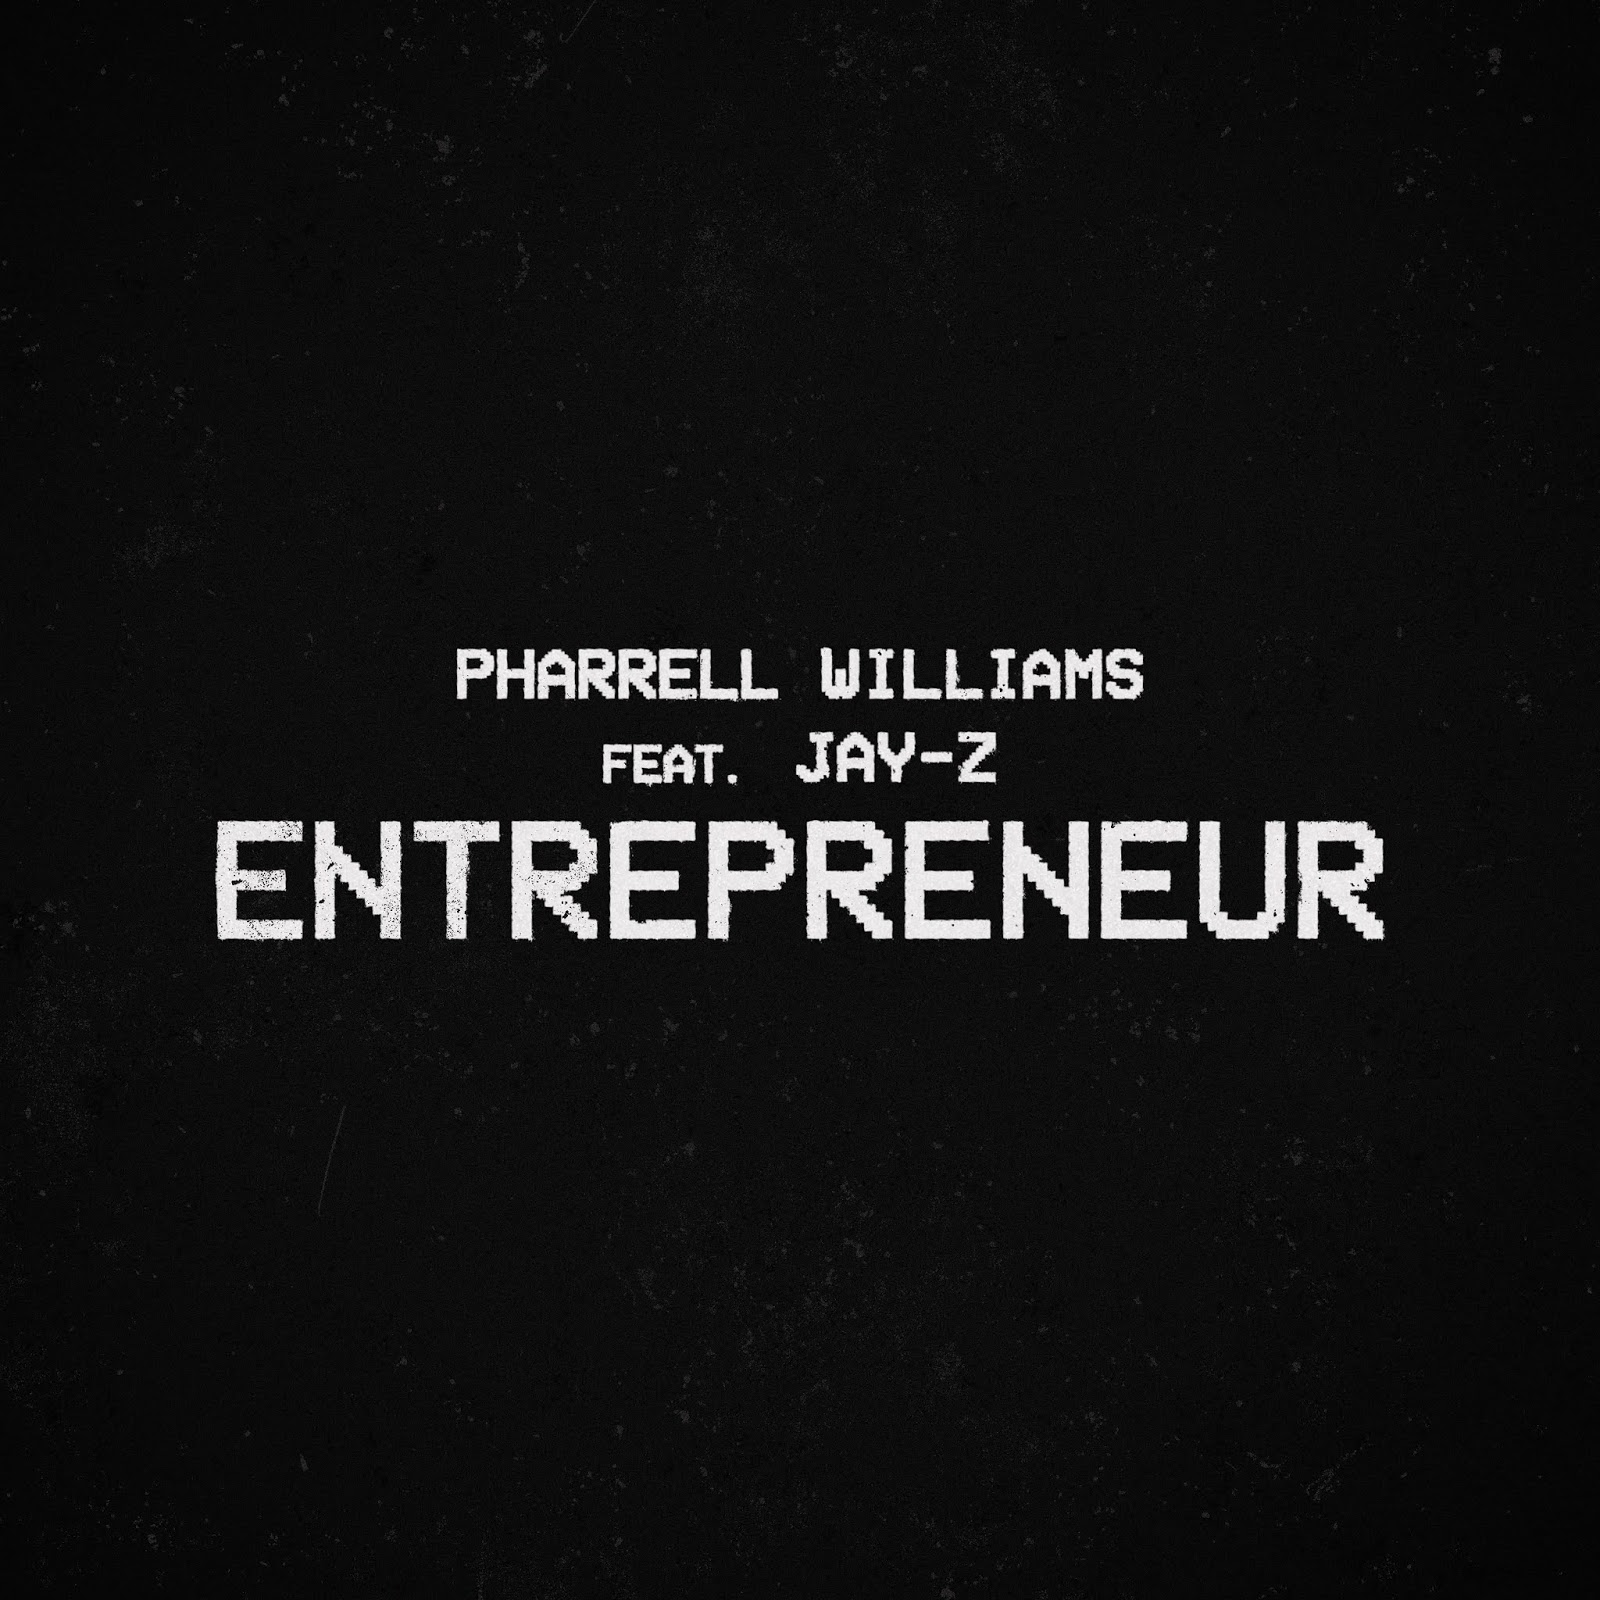 PHARRELL WILLIAMS ENTREPRENEUR